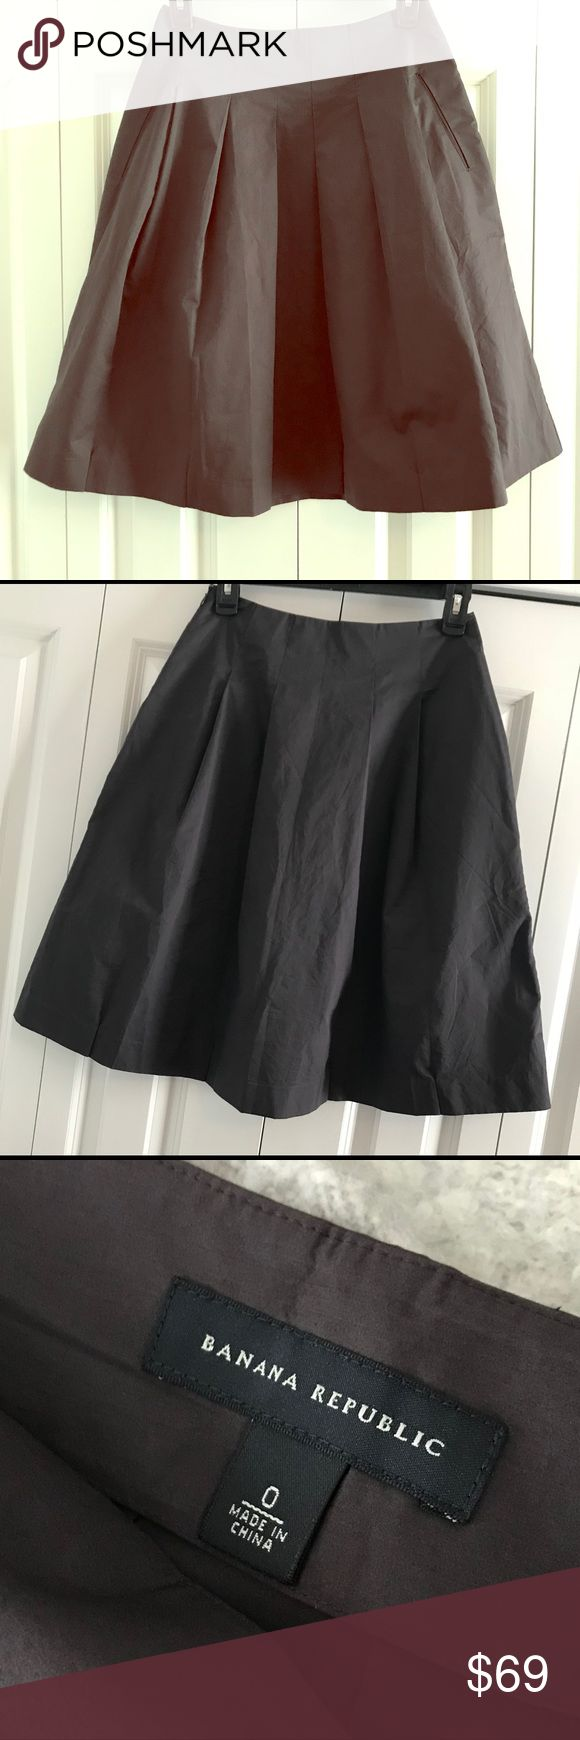 Deep Plum Banana Republic Skirt Beautiful dress skirt with side zip and pockets in a gorgeous deep plum color (does not show well in pictures). Detailed pleating around hip line. Has a slight sheen to the material. I dressed it up with a crisp collared shirt and some chunky retro heels. Size 0. In excellent condition. Smoke free/pet free home. Zero flaws!!! Banana Republic Skirts